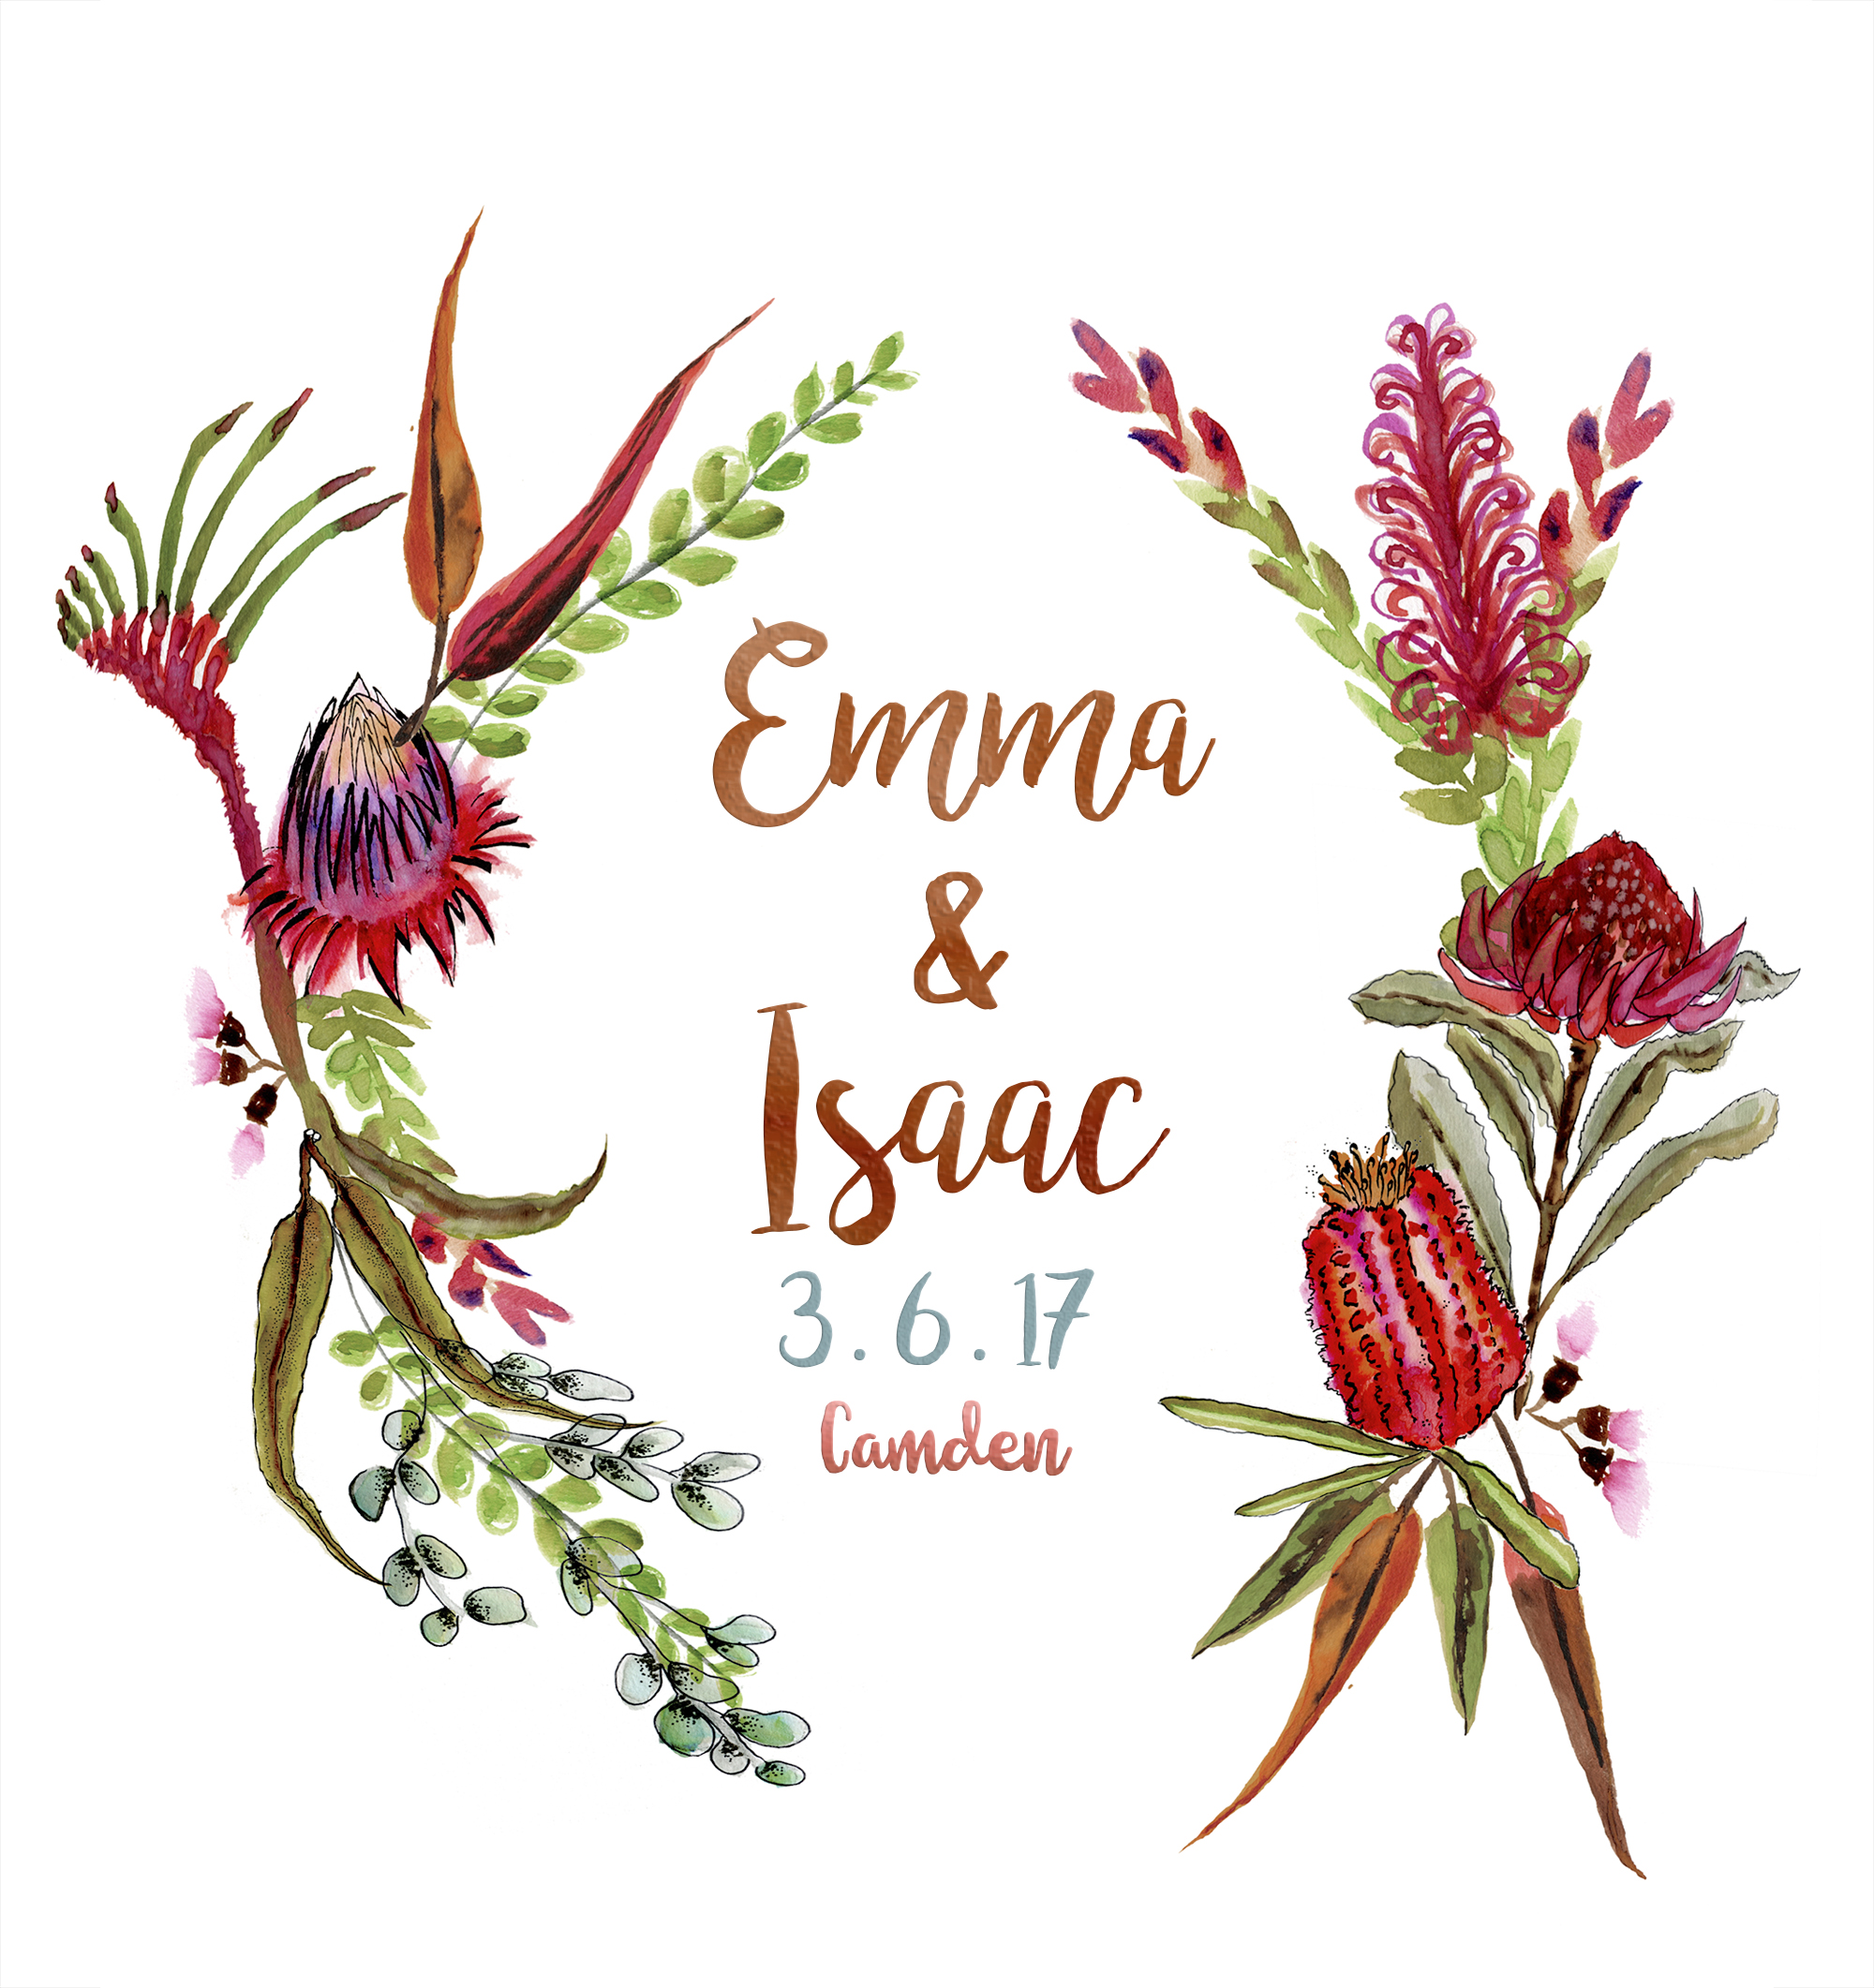 Emma & Isaac Watercolour Wedding Save the Dates